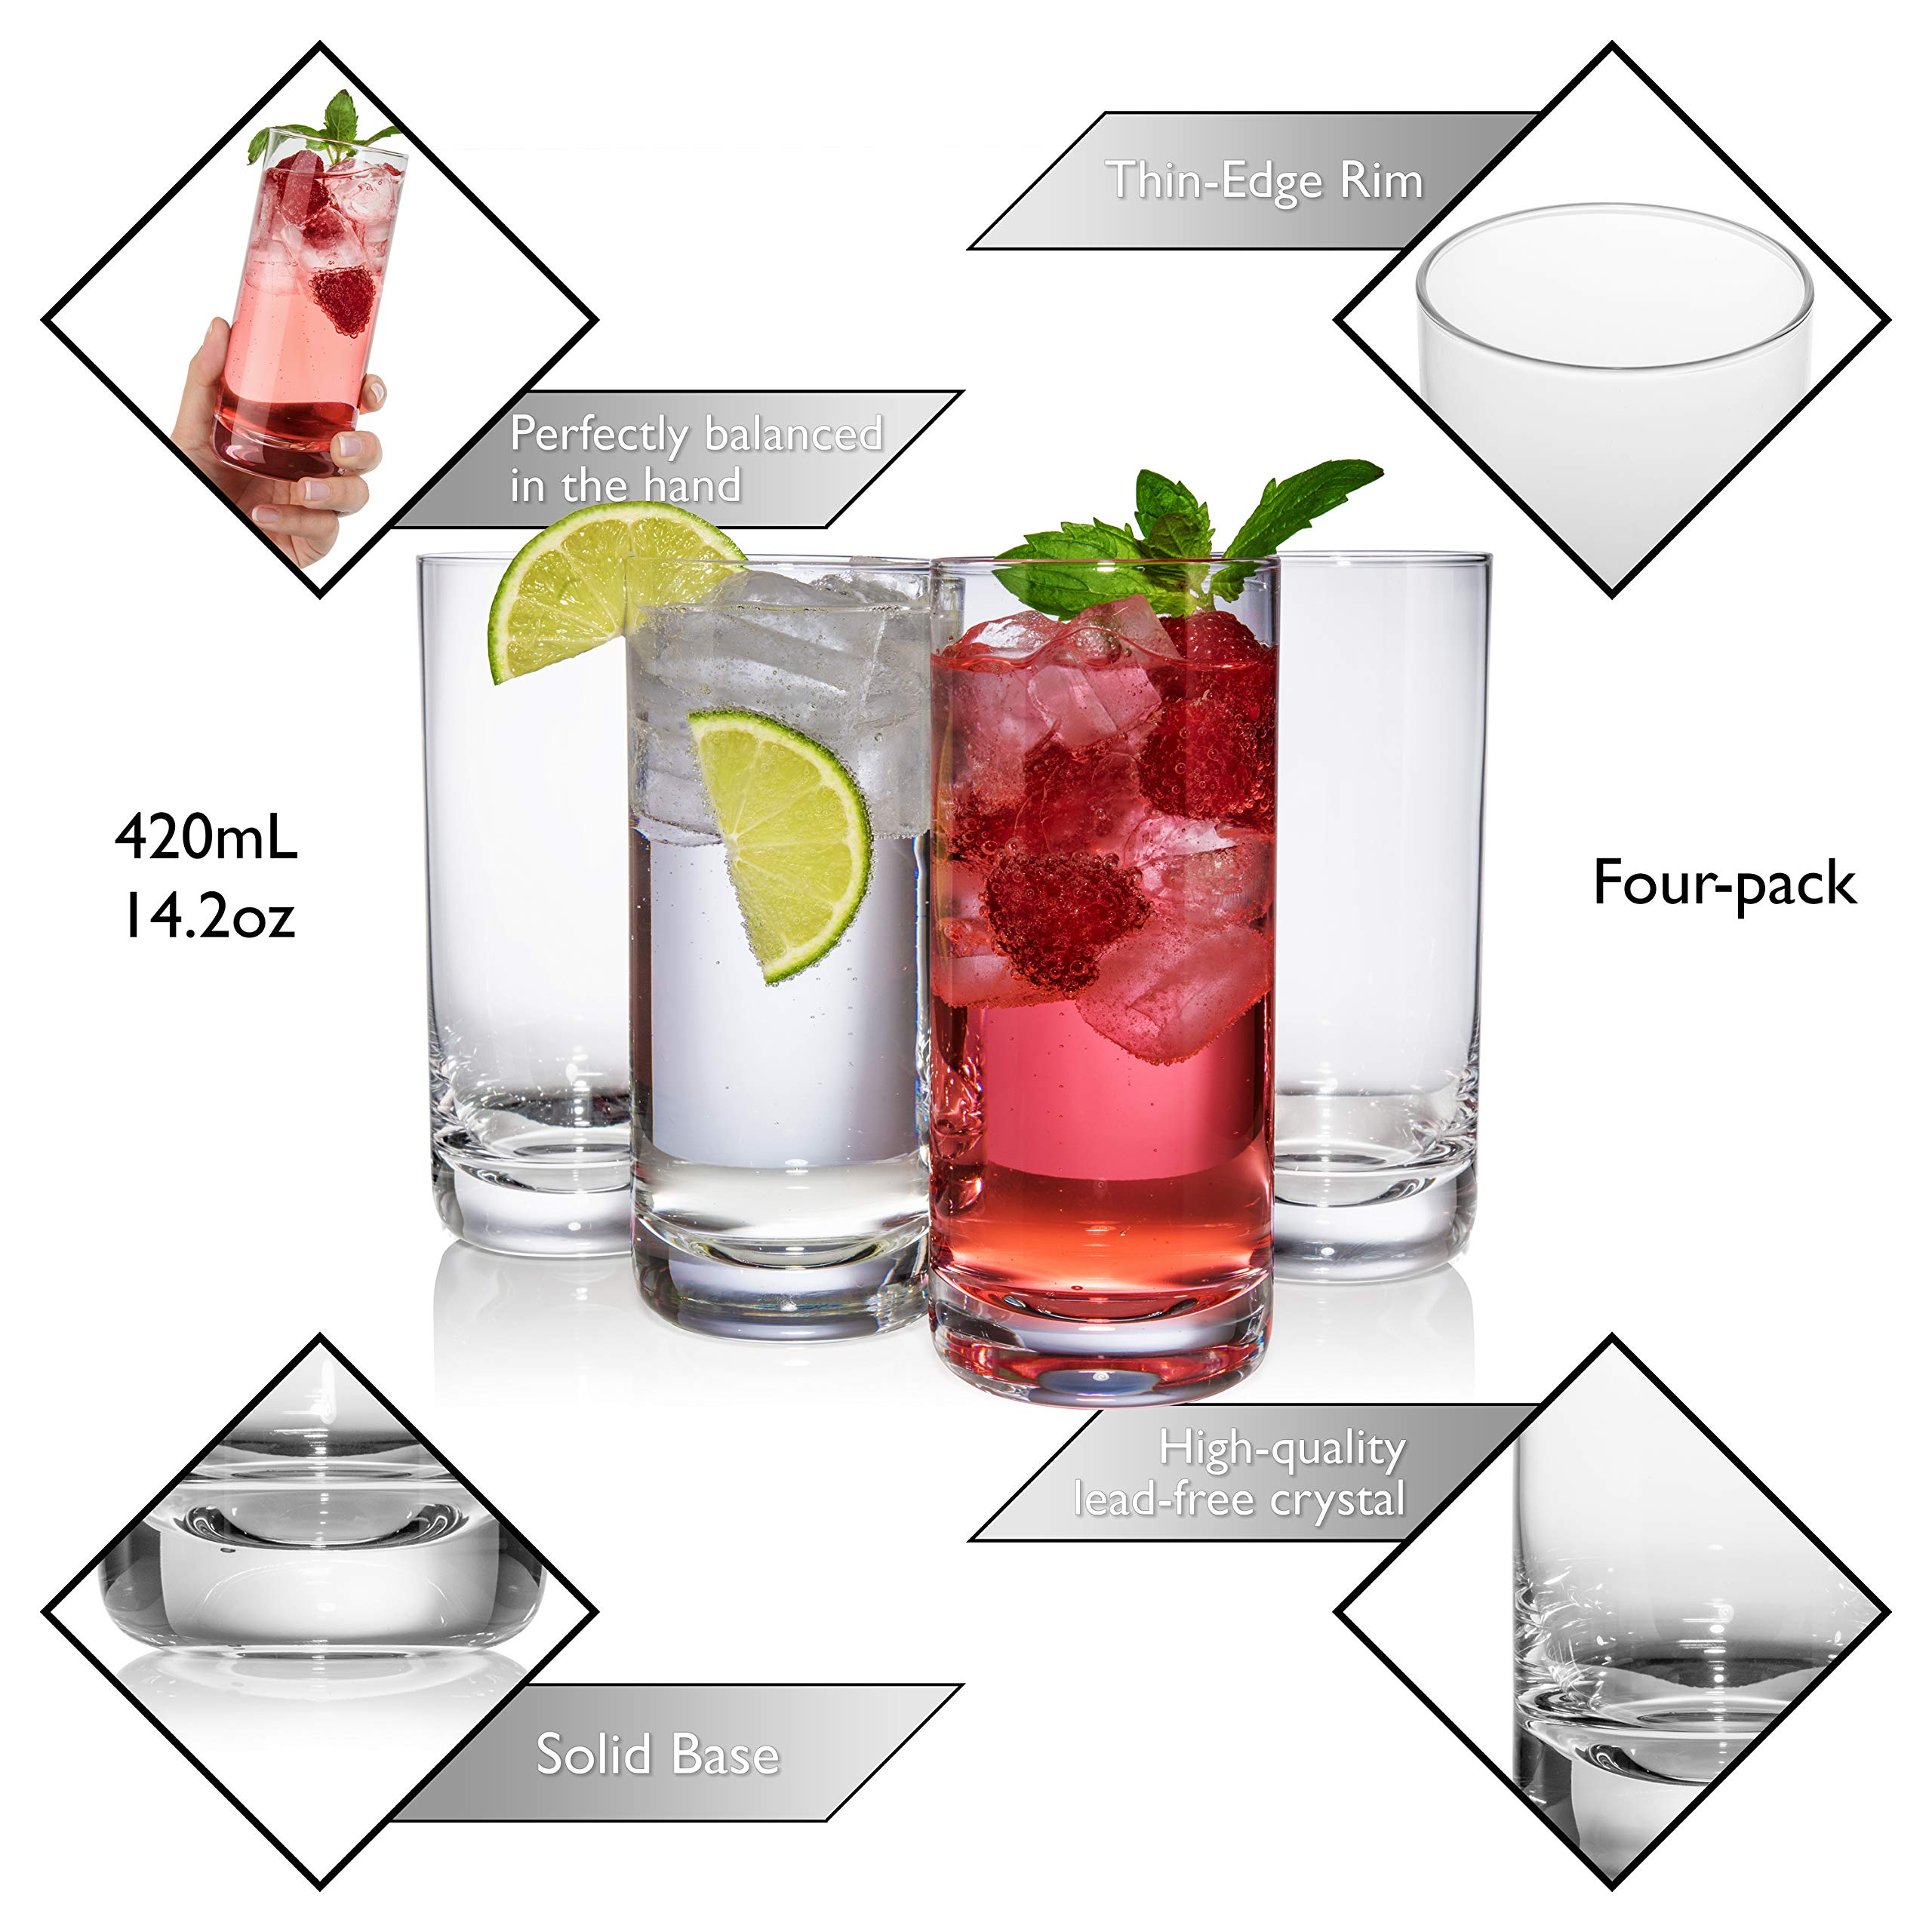 JoyJolt Stella Lead Free Crystal Highball Glass 14.2-Ounce Barware Collins Tumbler Drinking Glasses For Water, Juice, Beer, And Cocktail Set Of 4 by JoyJolt (Image #4)